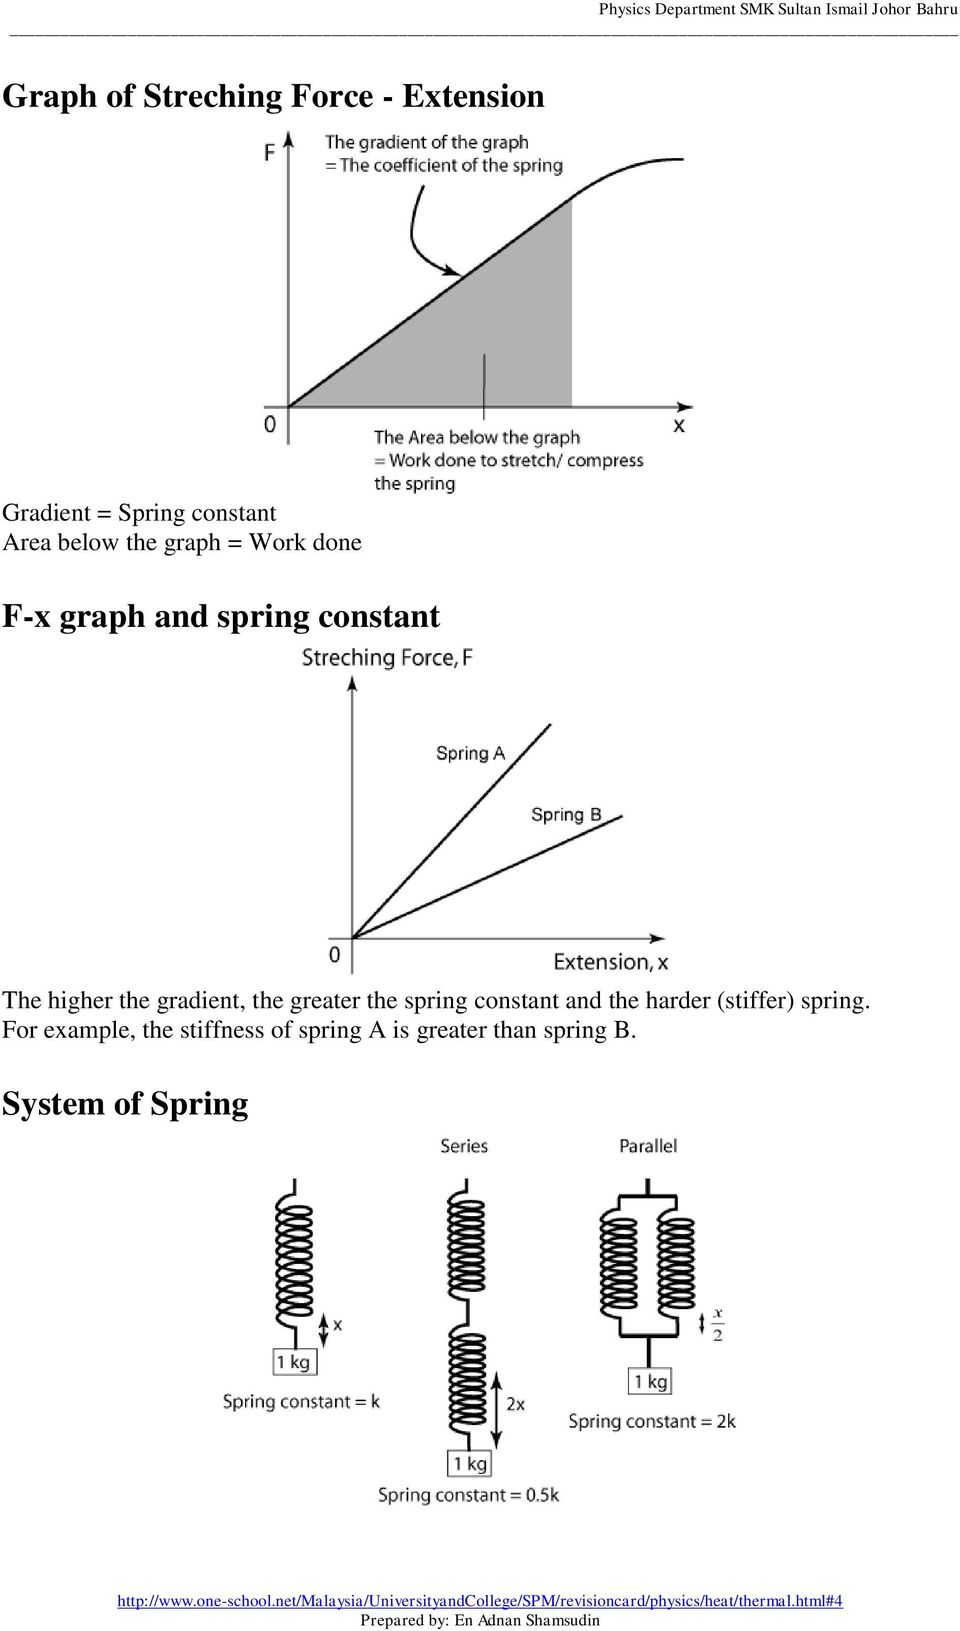 gradient, the greater the spring constant and the harder (stiffer) spring.